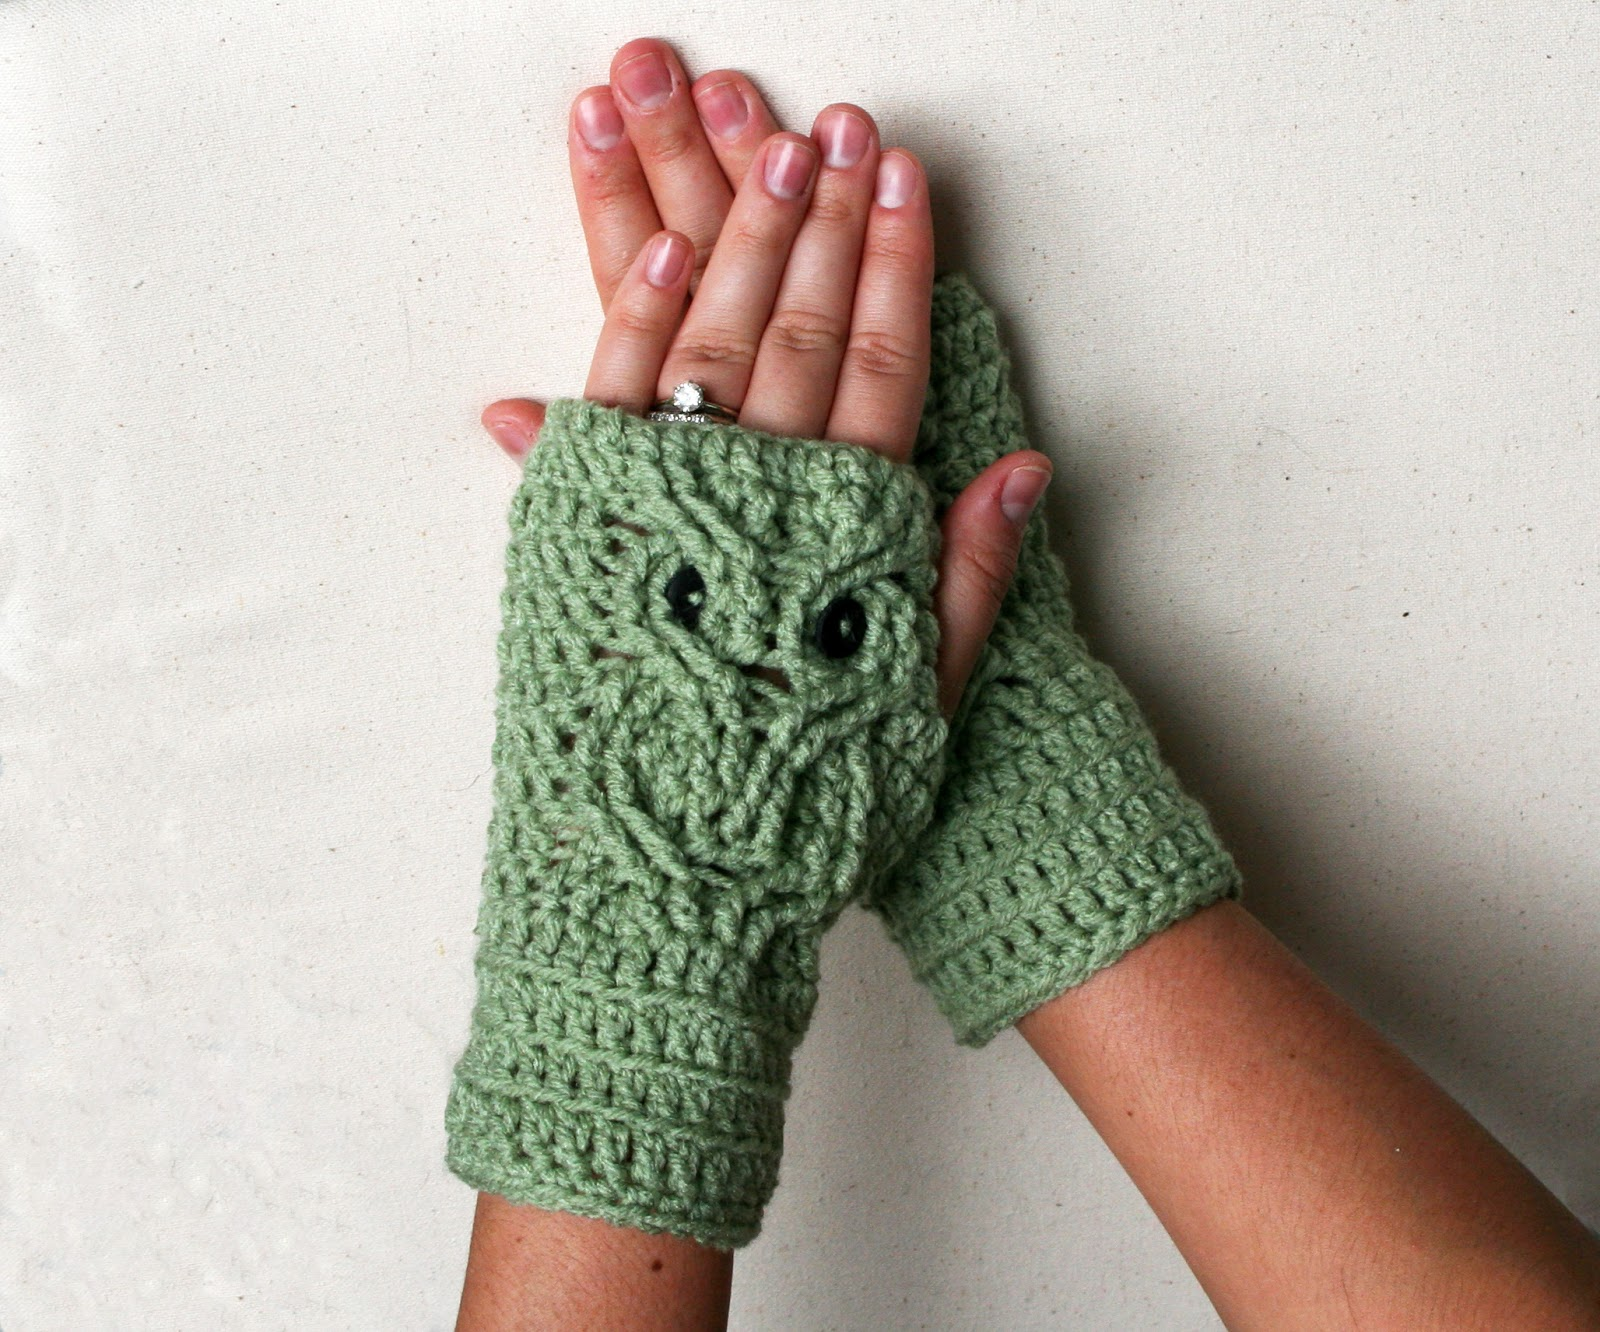 Crochet Gloves : Tampa Bay Crochet: Free Crochet Pattern: Owl Fingerless Gloves